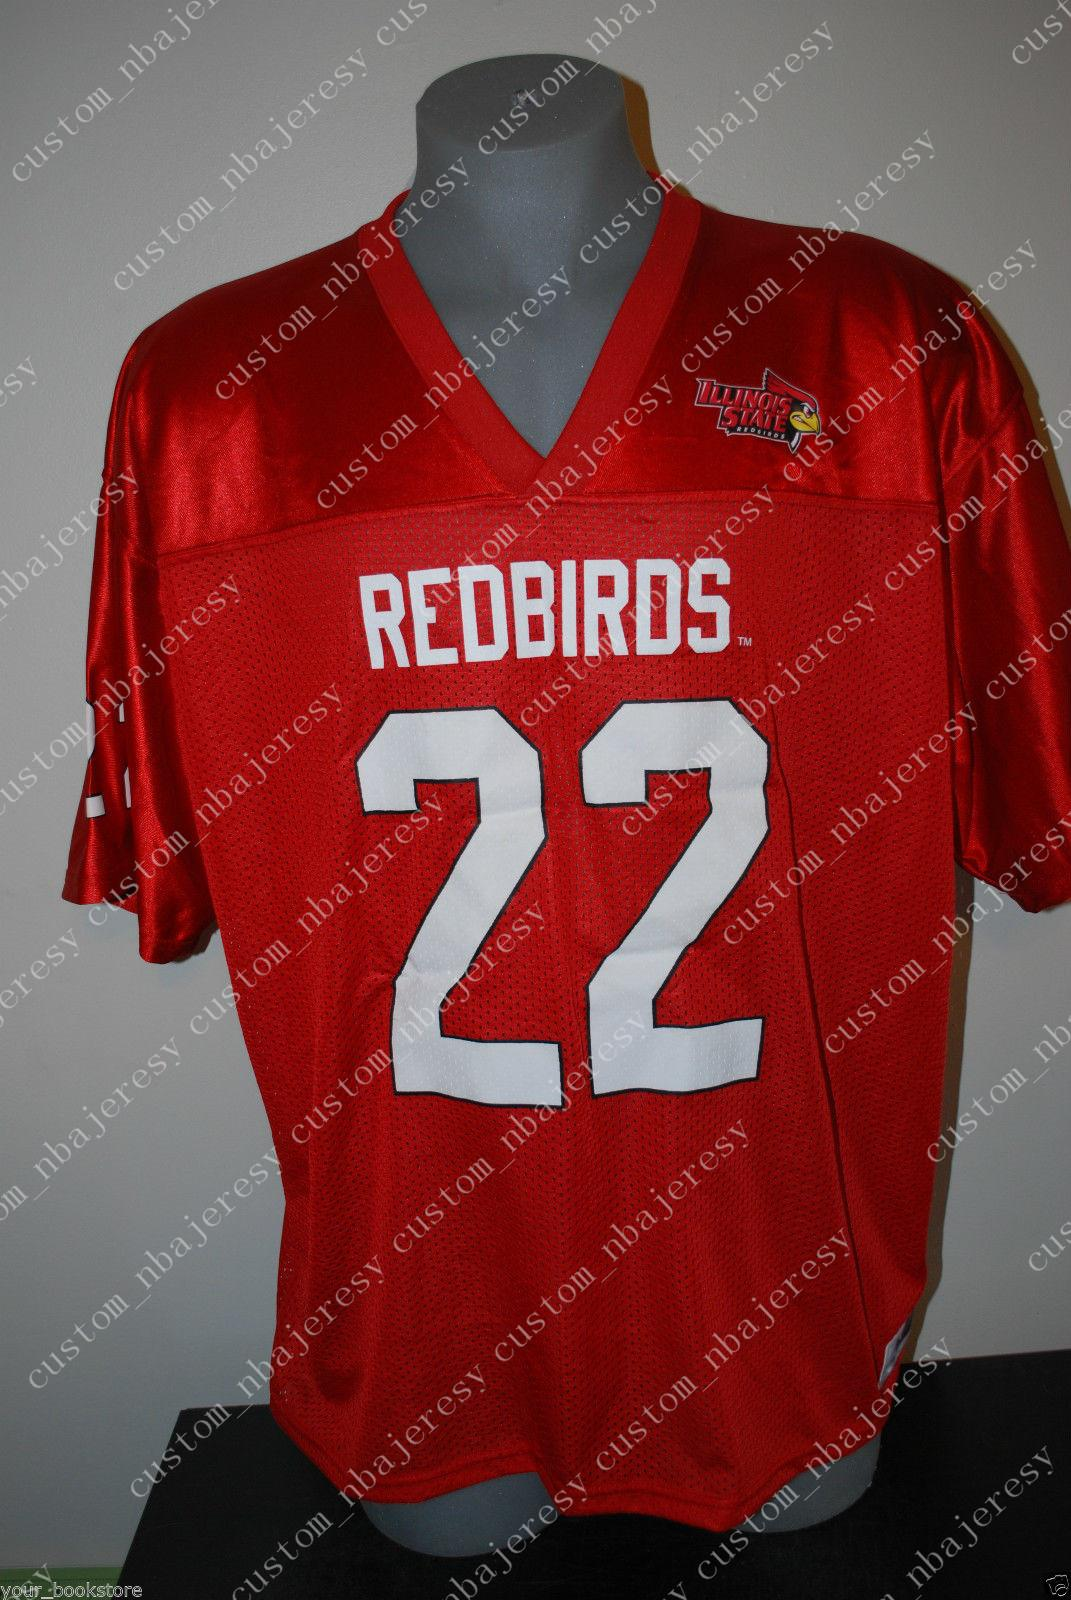 pretty nice c1105 0ffd7 Cheap custom New Ezra Thompson Illinois State Redbirds College NCAA  Football Jerseys Customized Any name number Stitched Jersey XS-5XL